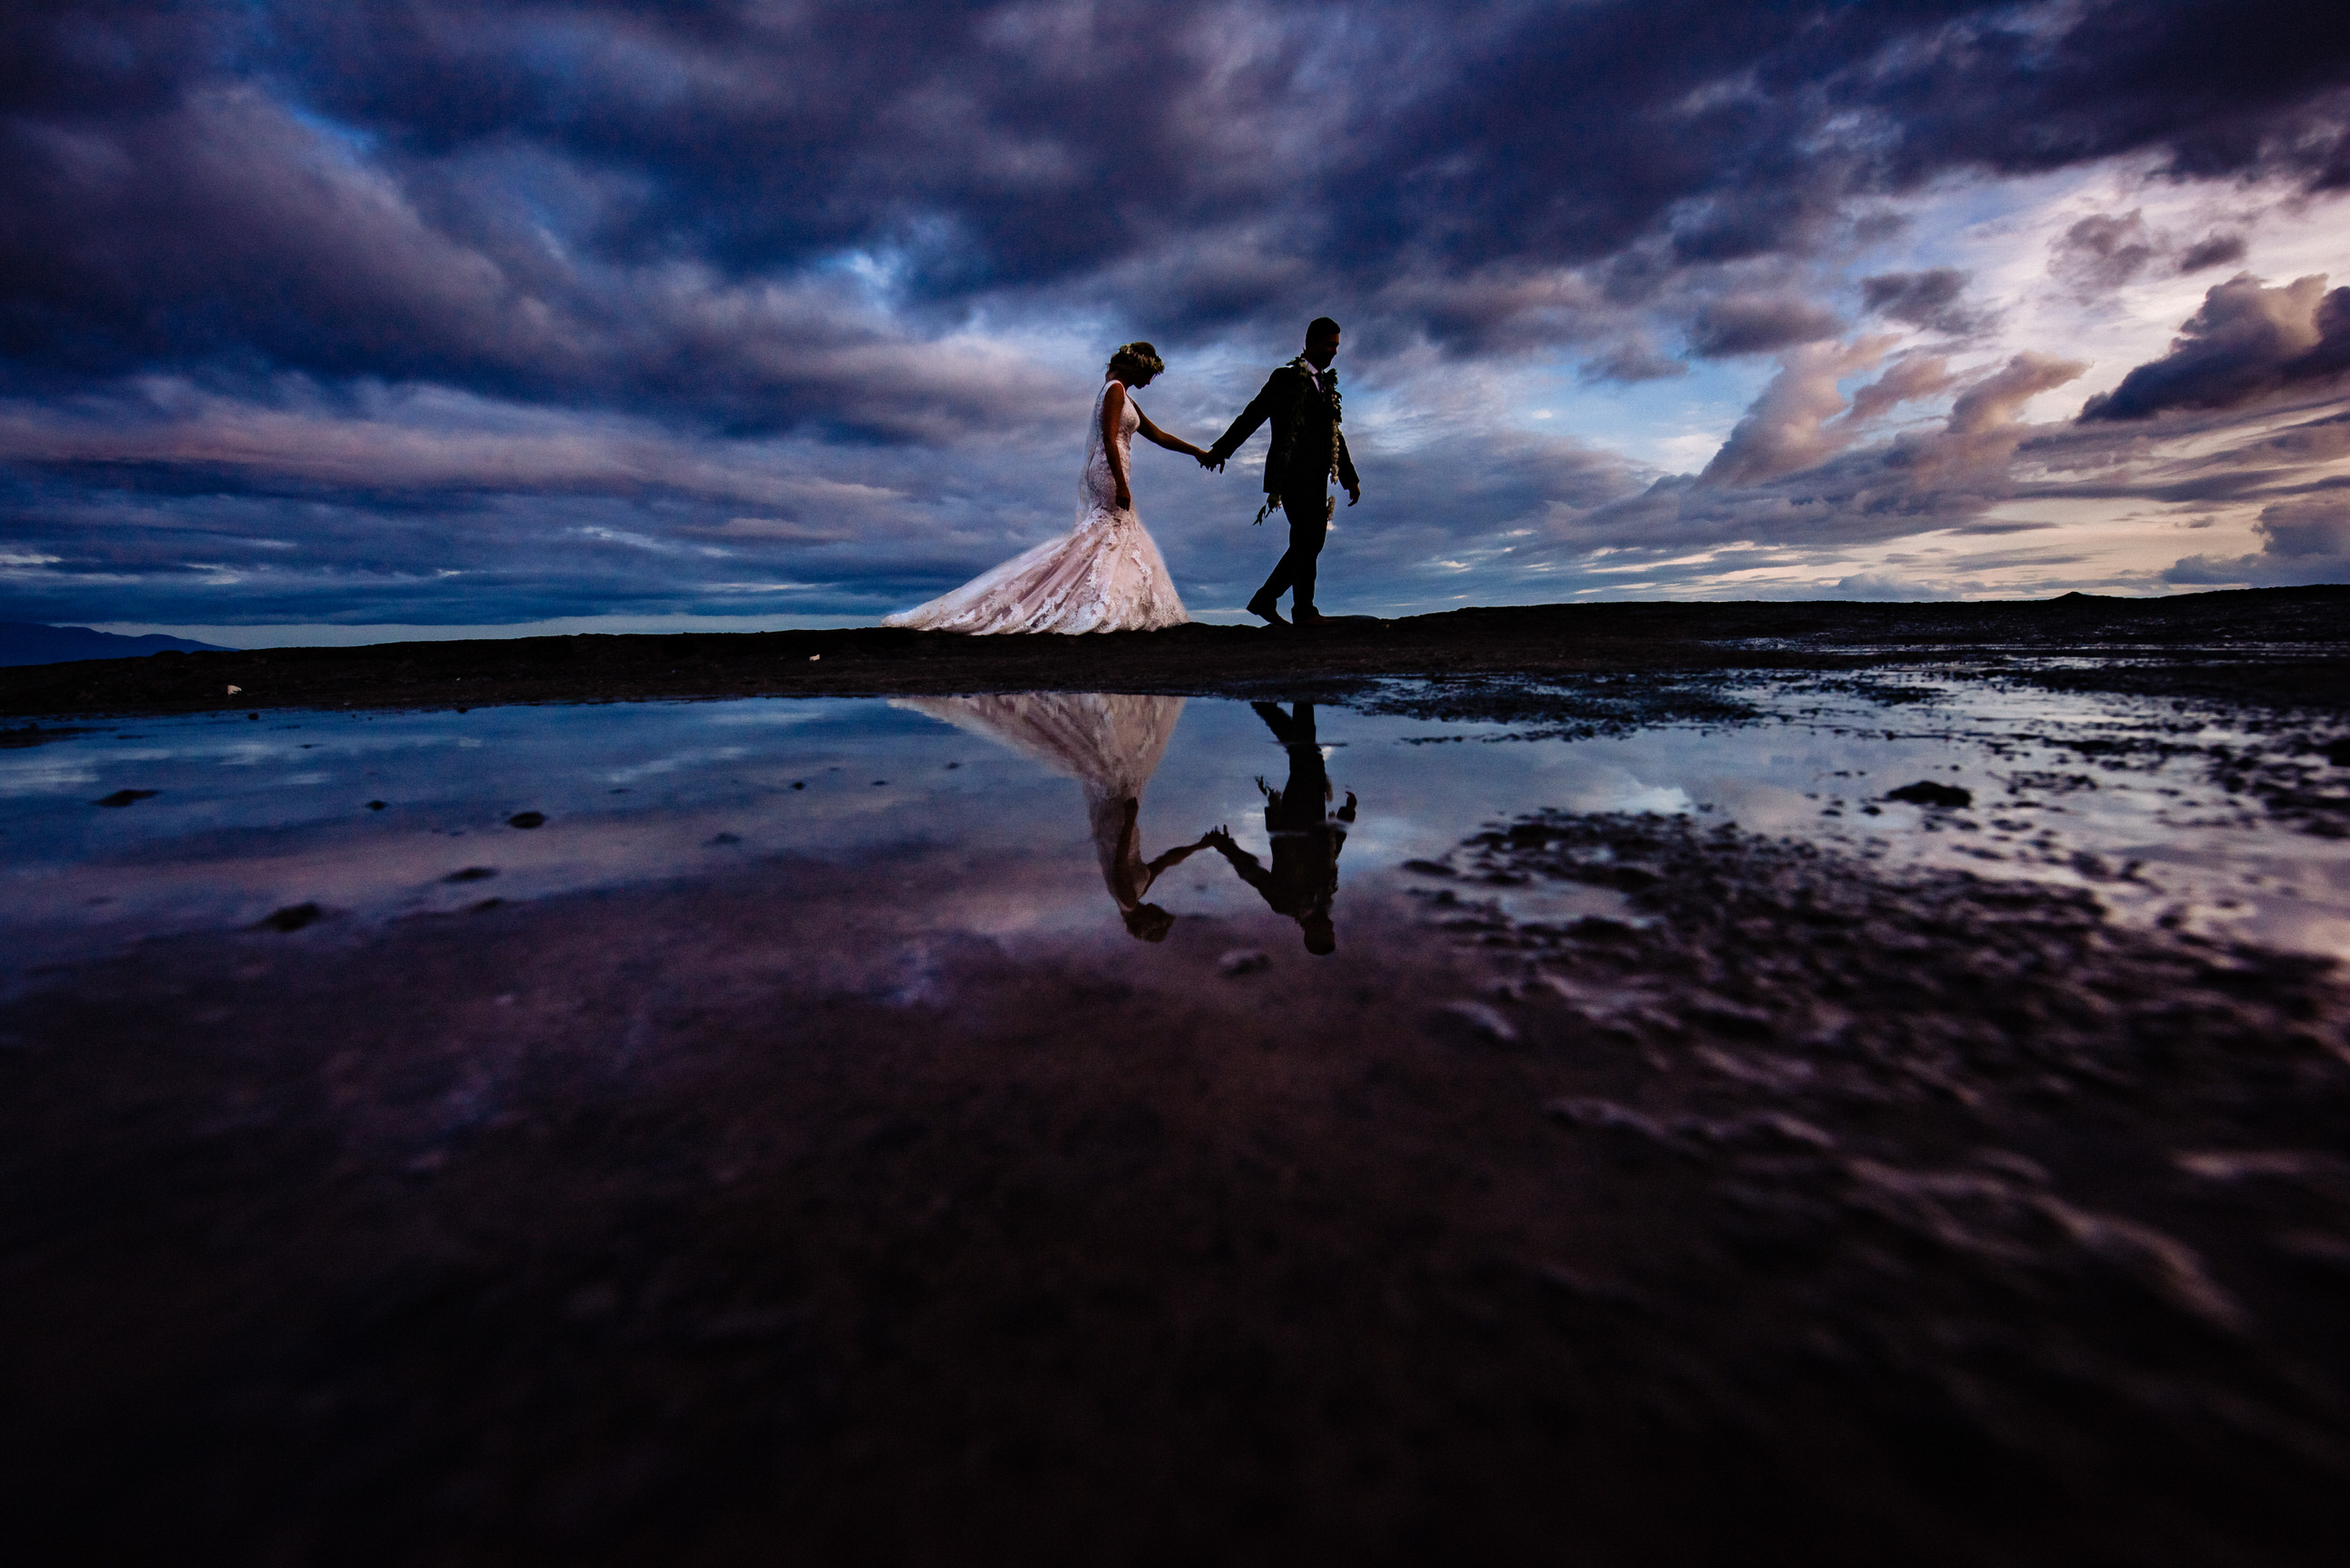 Reflected couple against stormy skies - photo by Angela Nelson Photography